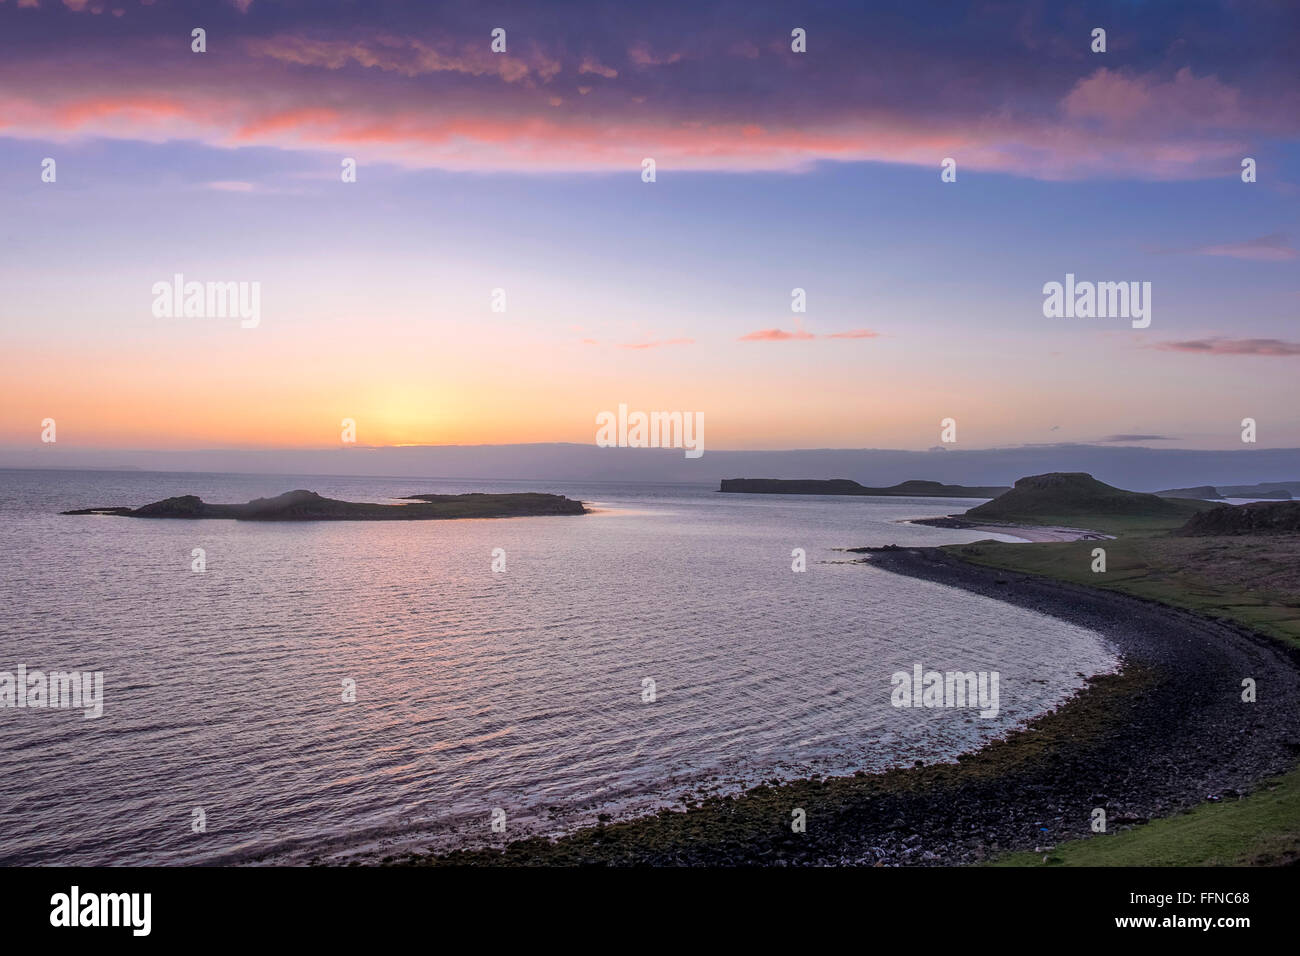 magenta sunset over coral beach at loch dunvegan with dusky islets - Stock Image